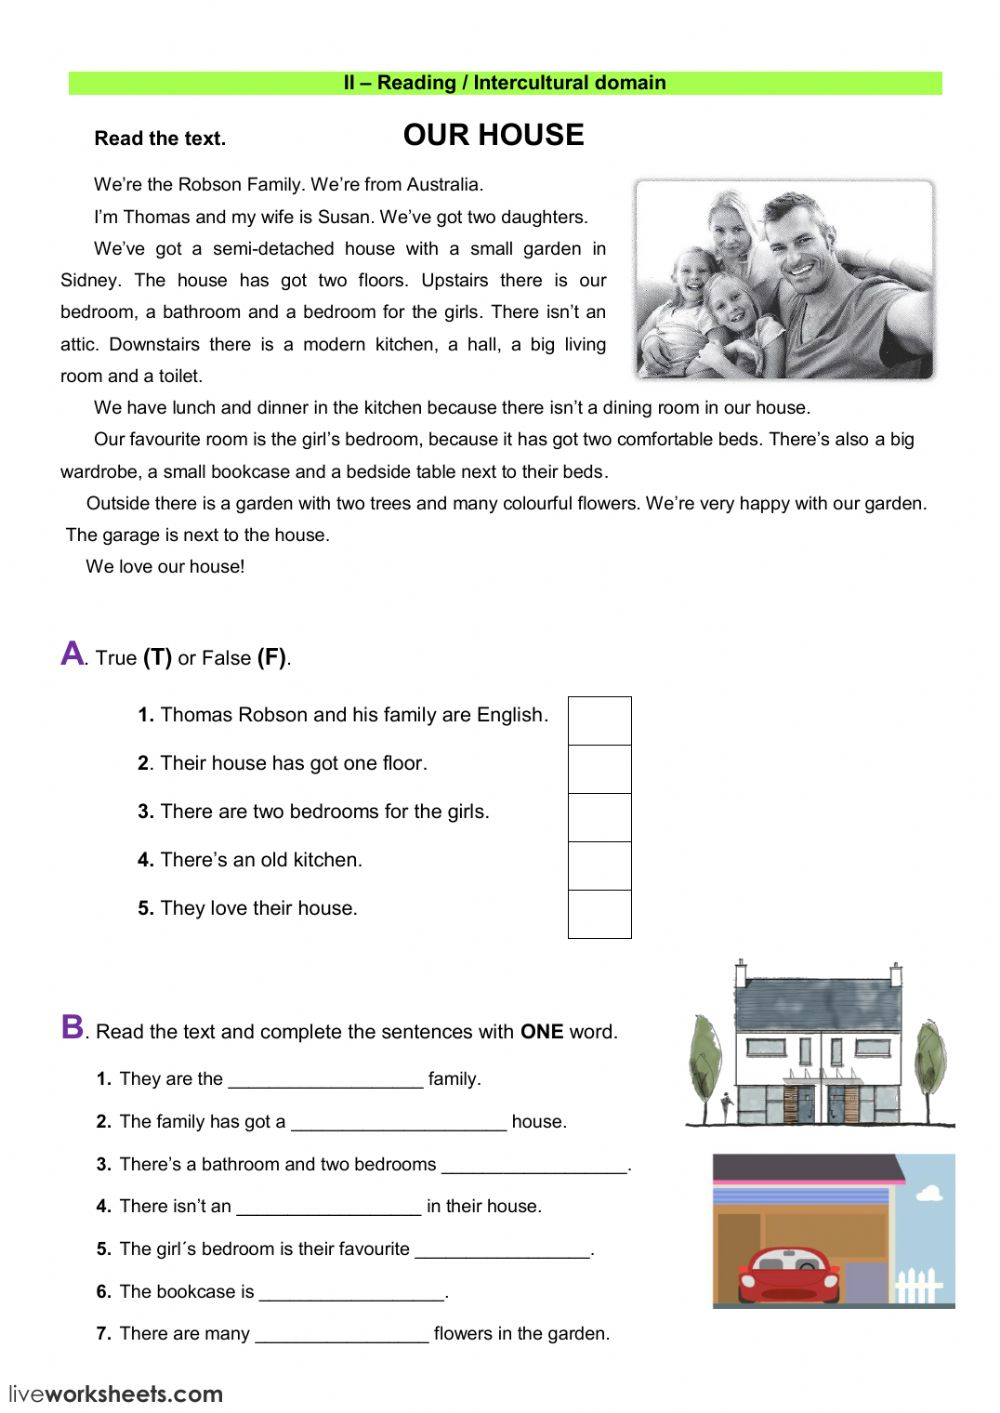 - Reading Test: The House Worksheet